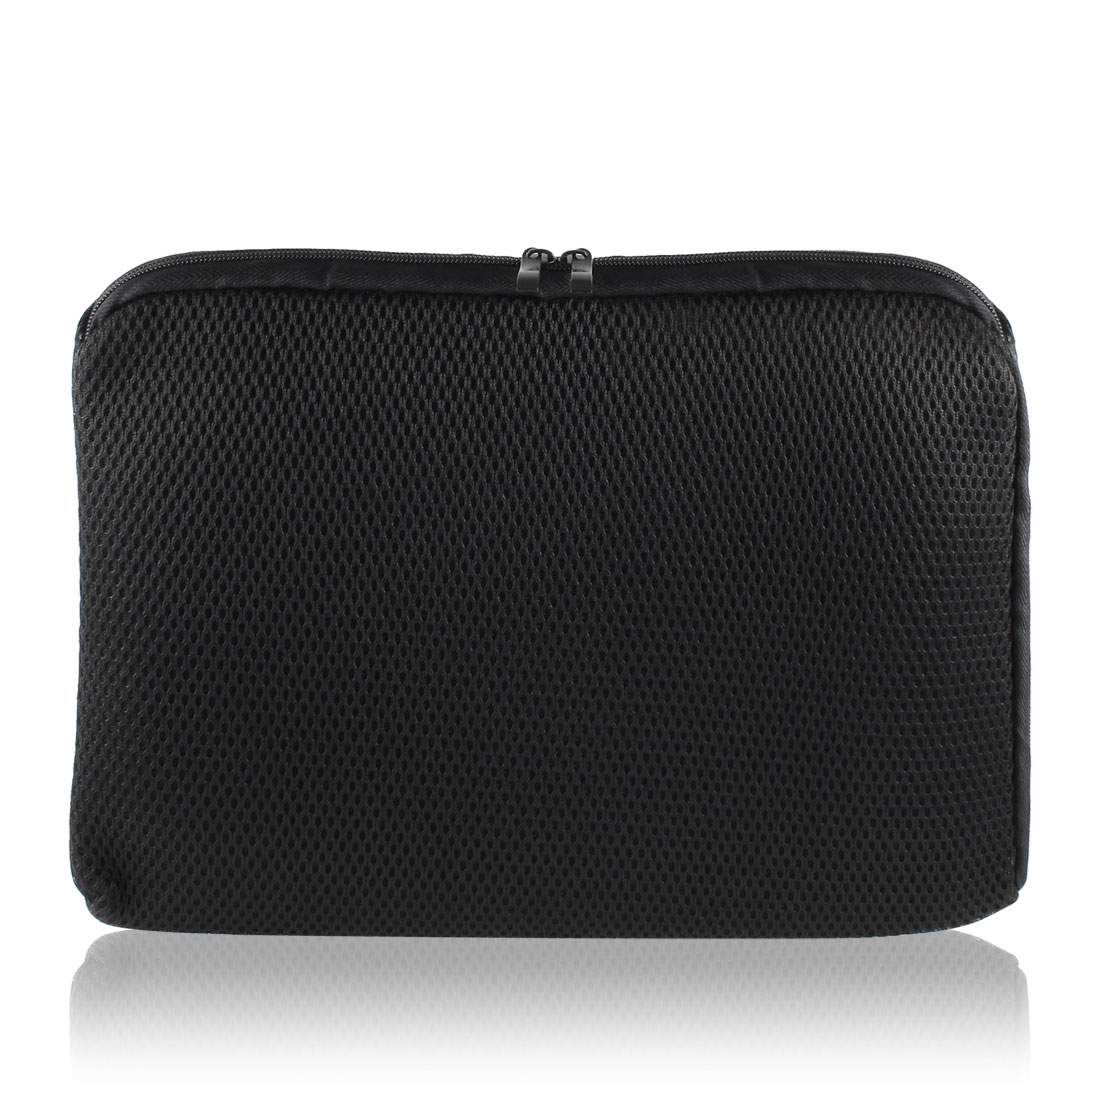 "13"" Black Mesh Notebook Laptop Sleeve Bag Carrying Case for Macbook Pro/Air"